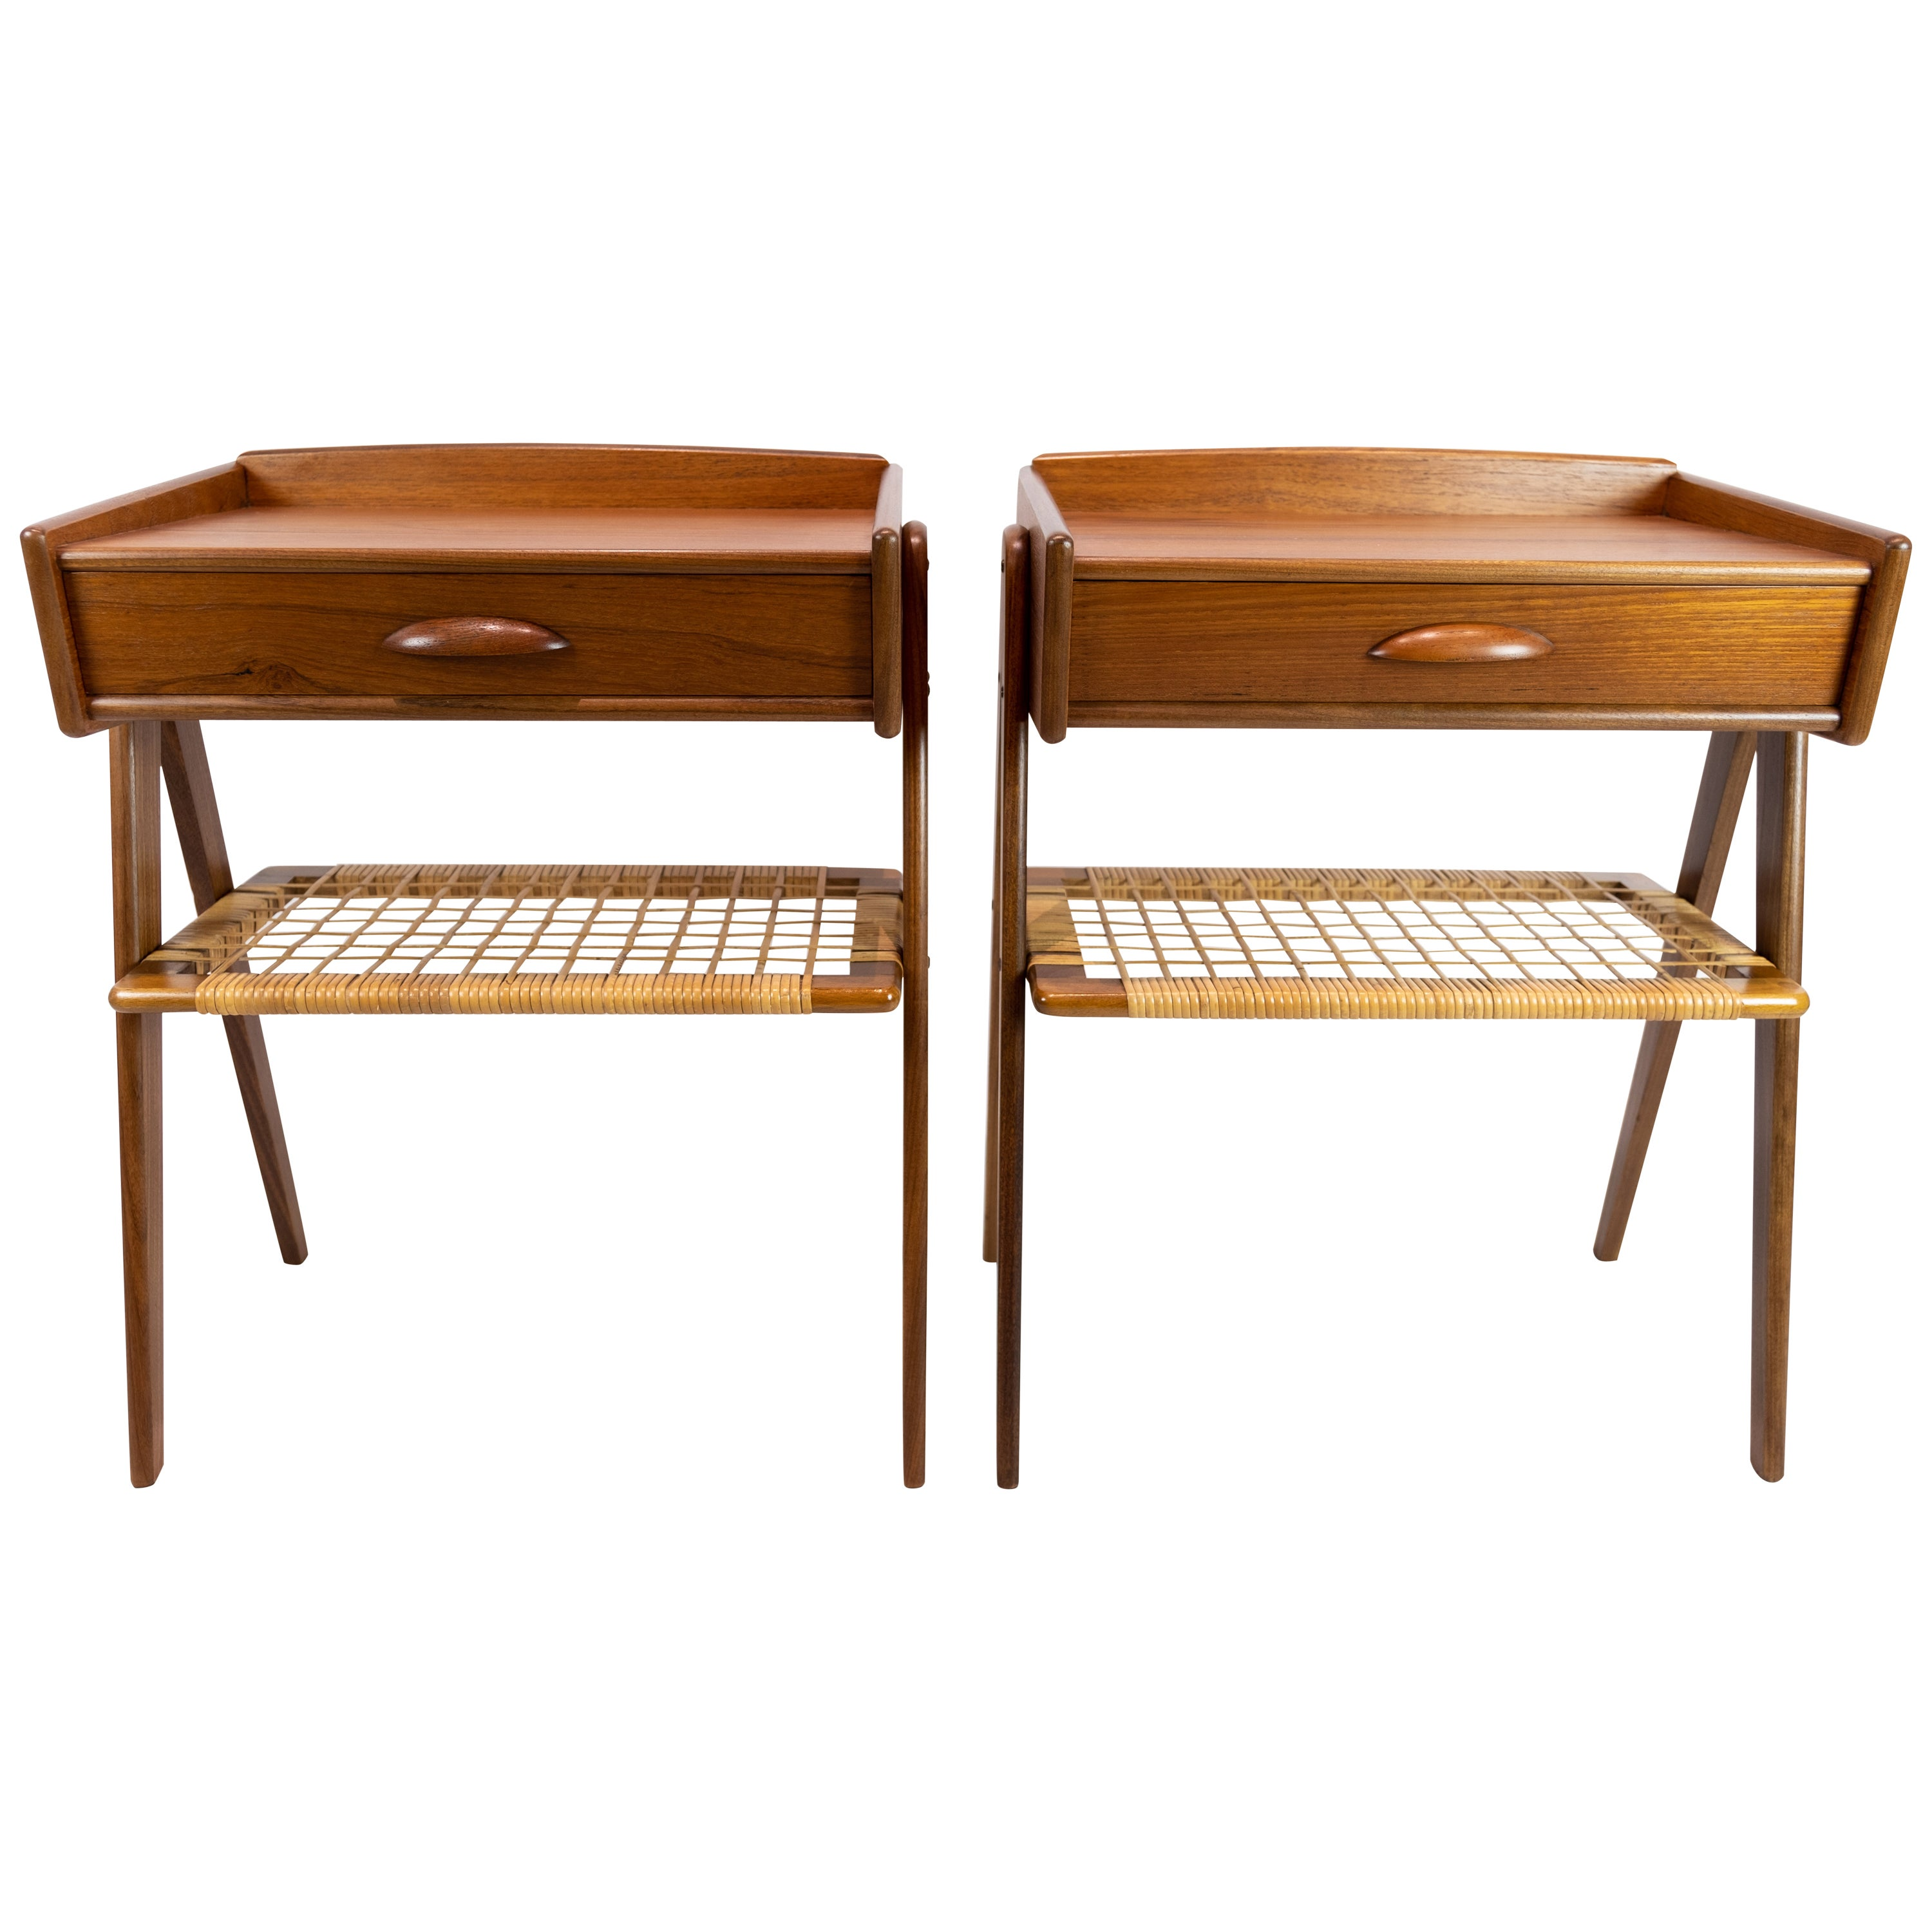 Pair of Side Tables in Teak with Paper Cord Shelf of Danish Design, 1960s